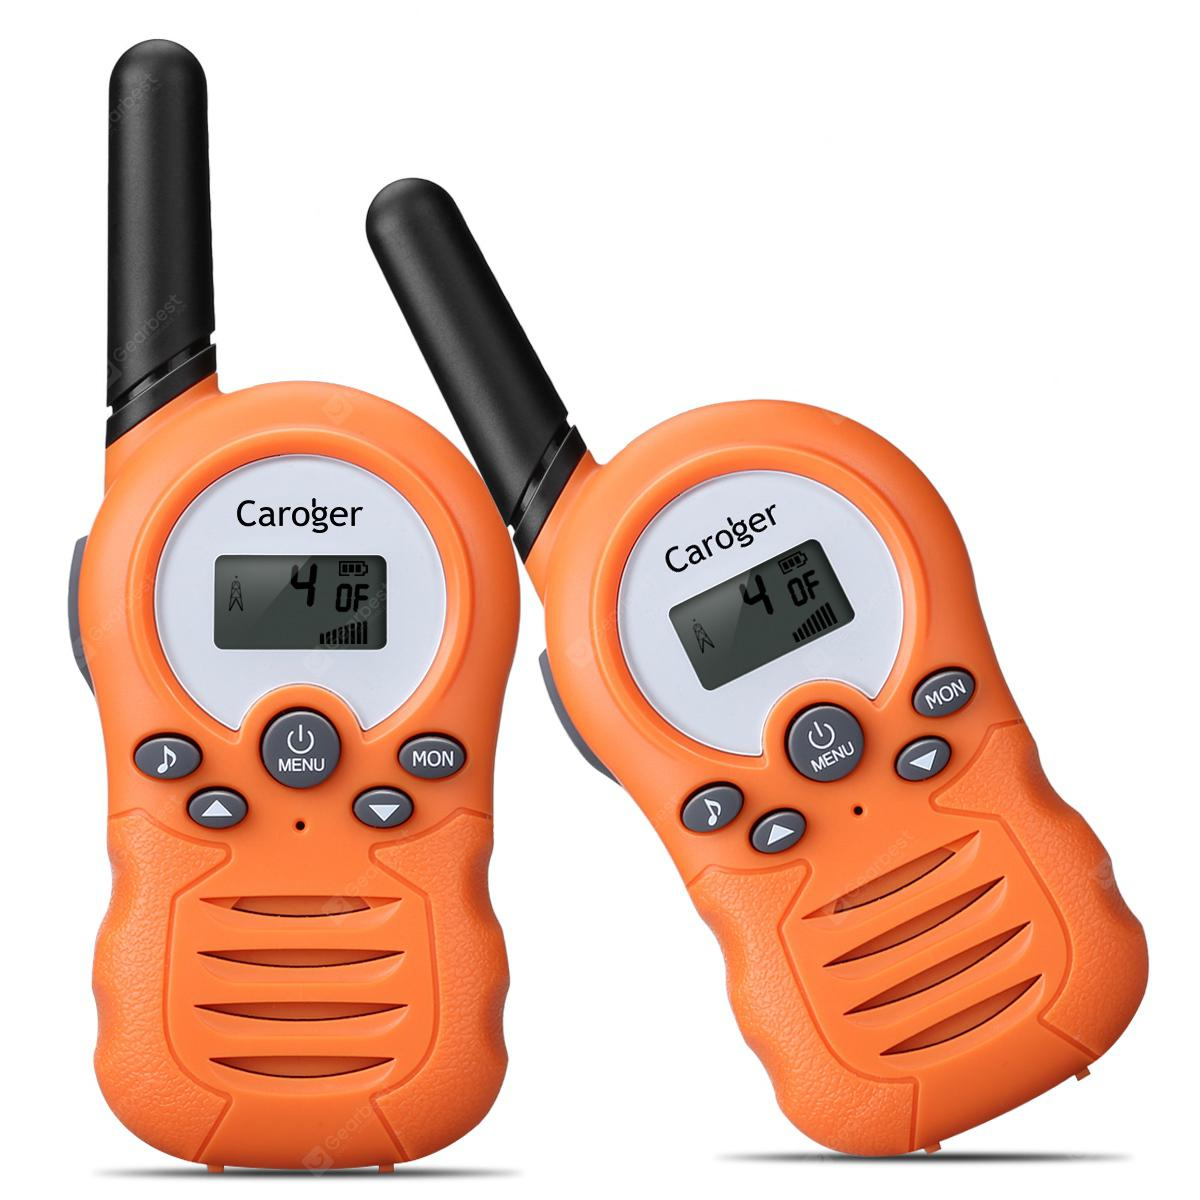 Caroger CR388A licença-Free Walkie Talkies 22packs 2 Canal FRS / GMRS / 462MHZ Radio Two Way 467 Até Metros 3300 / 2 Miles Faixa Handheld Interphone Orange -? Papaya